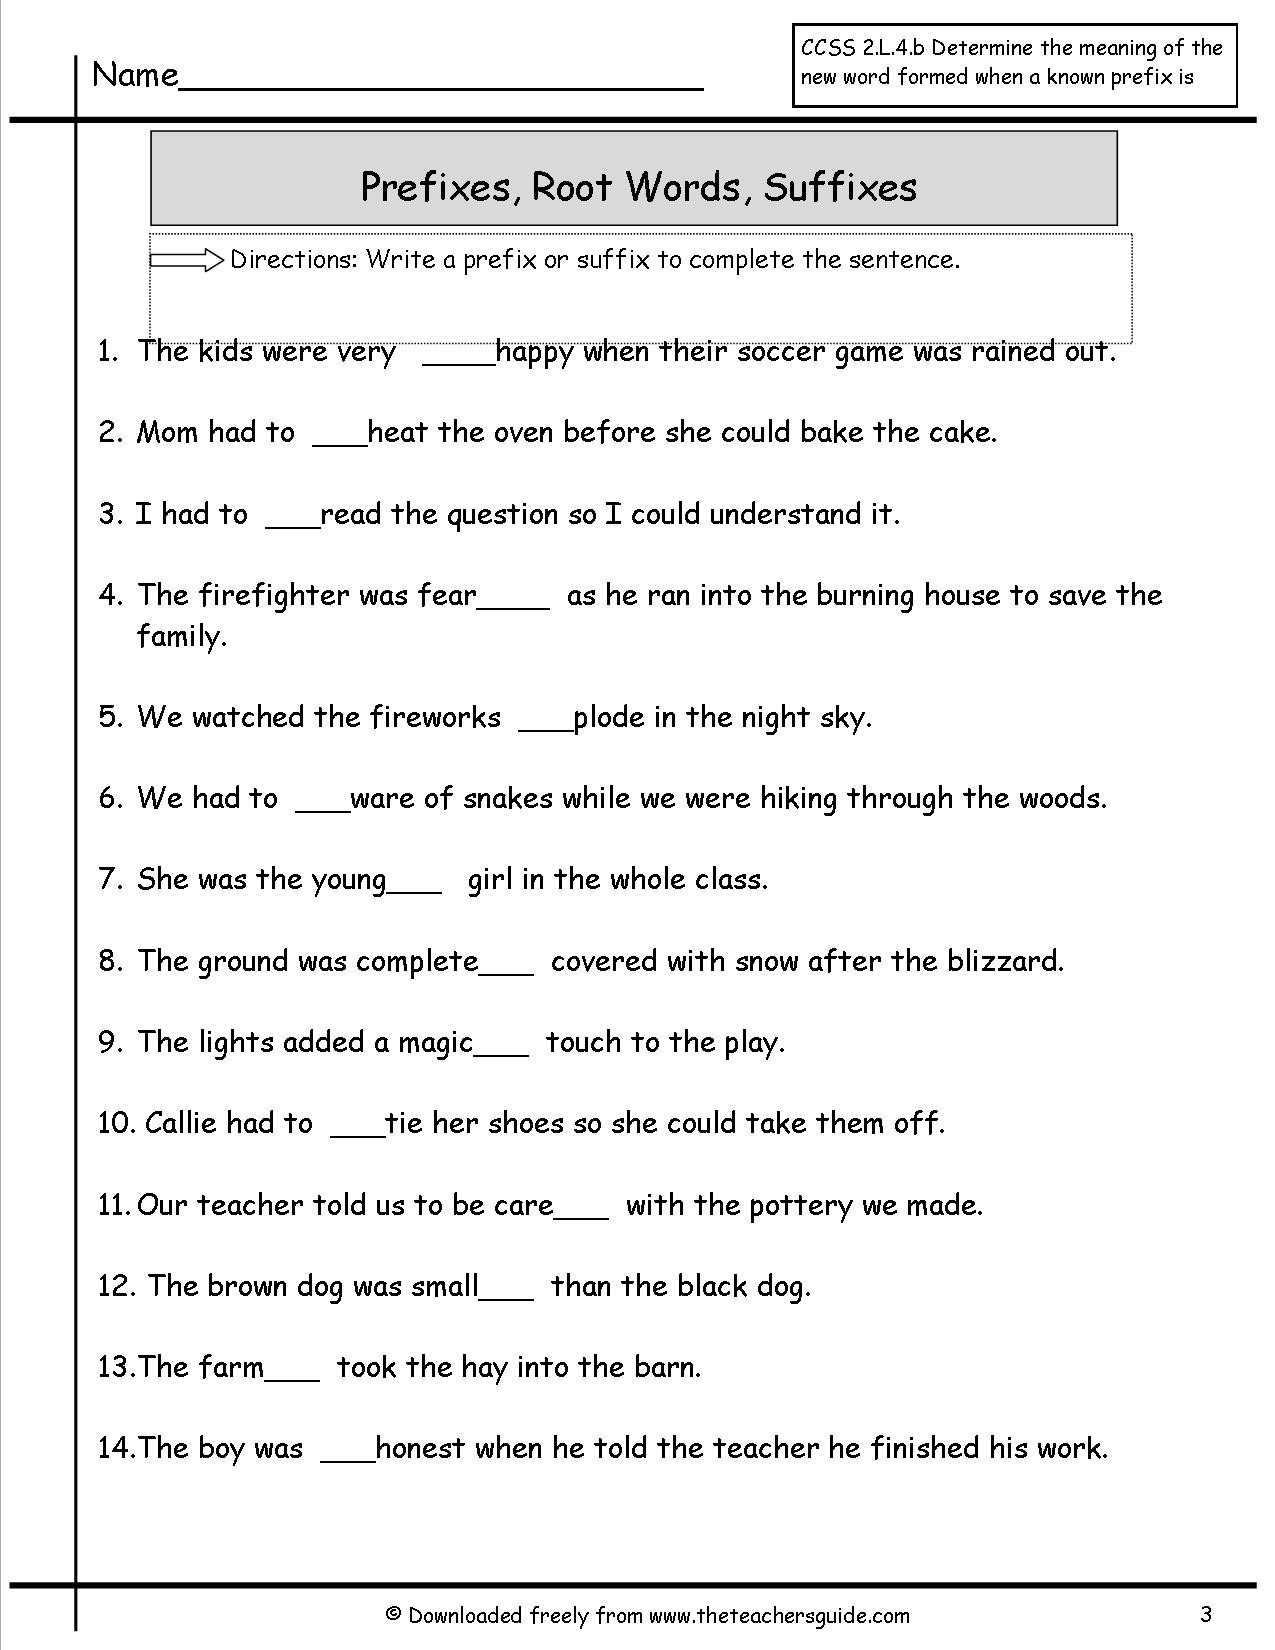 Prefixes Worksheets 4th Grade Awesome Prefixes and Suffixes Worksheet